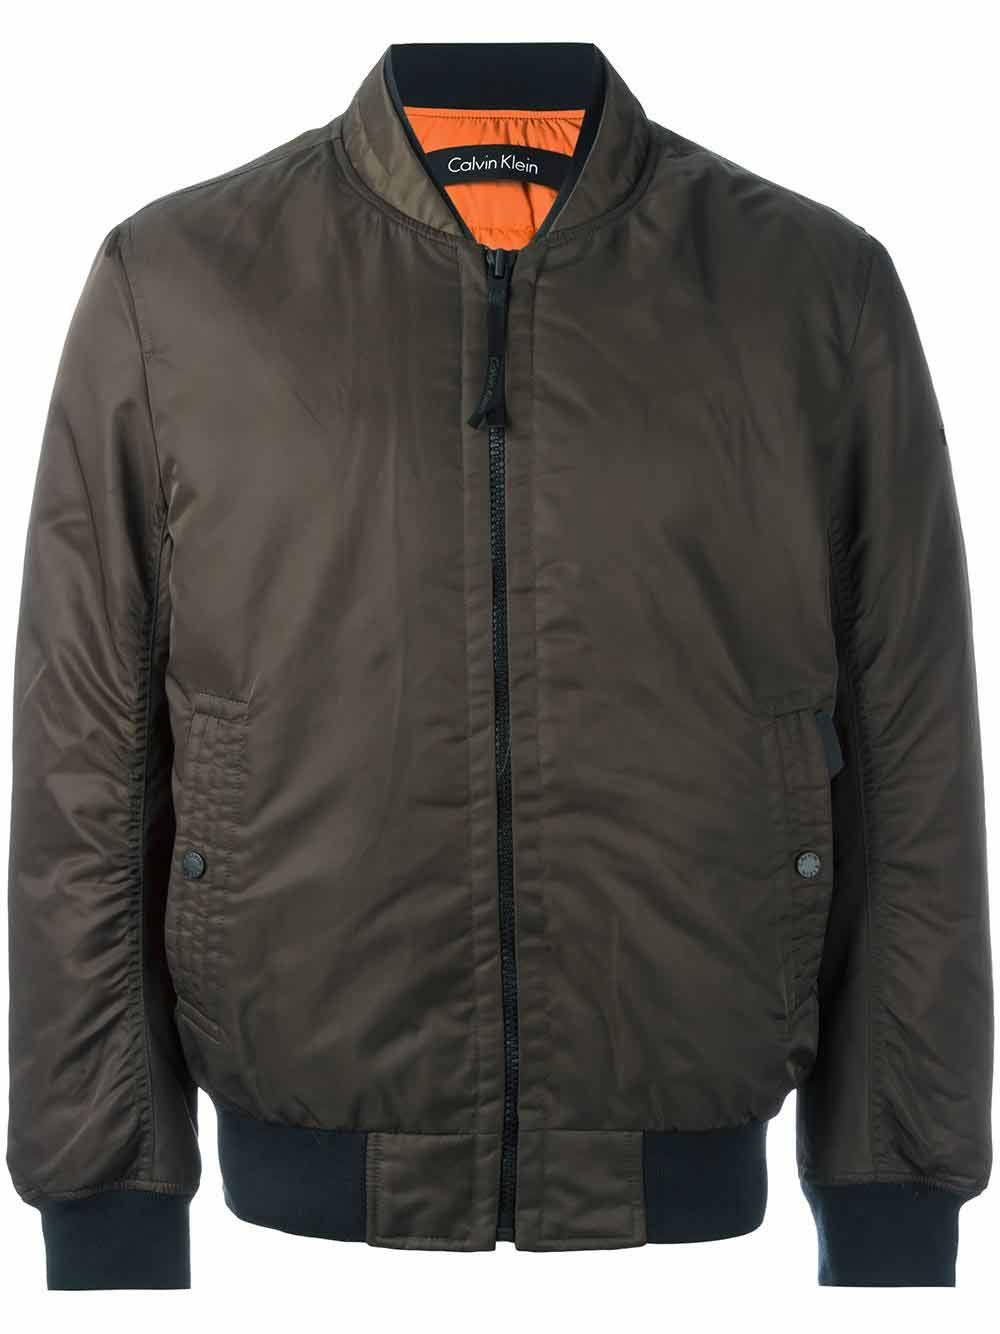 Top Brands For Winter Jackets | Designer Jackets